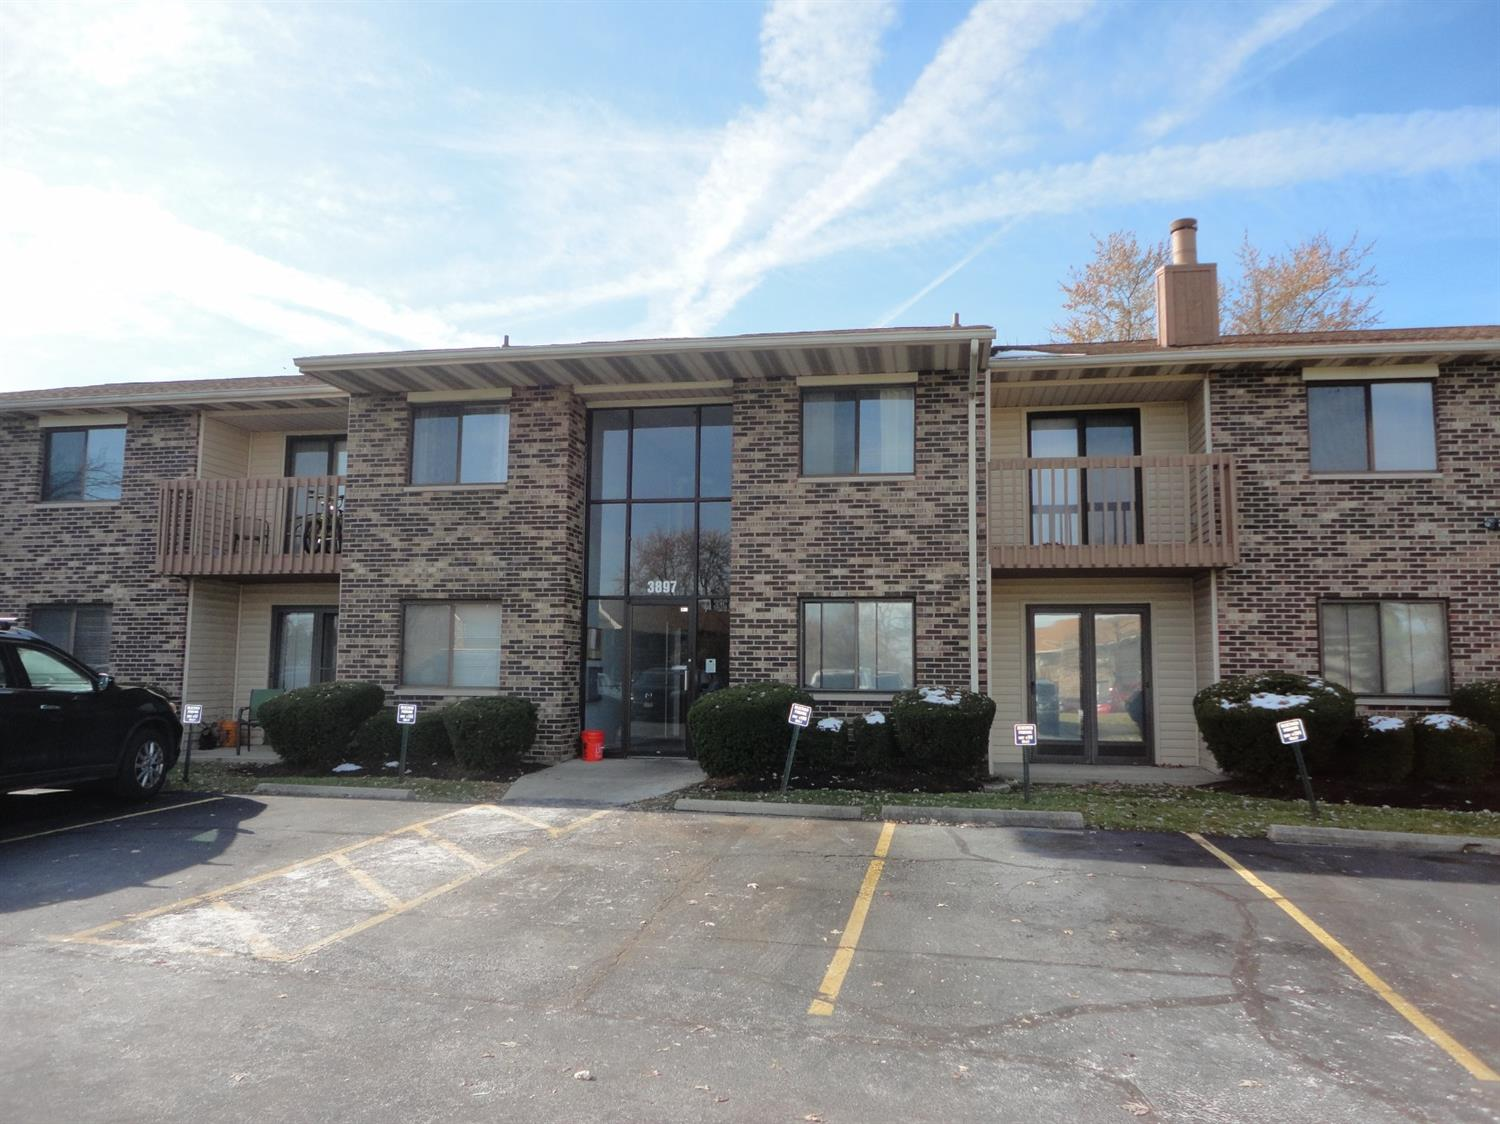 Property for sale at 3897 Mack Road Unit: 103, Fairfield,  Ohio 45014